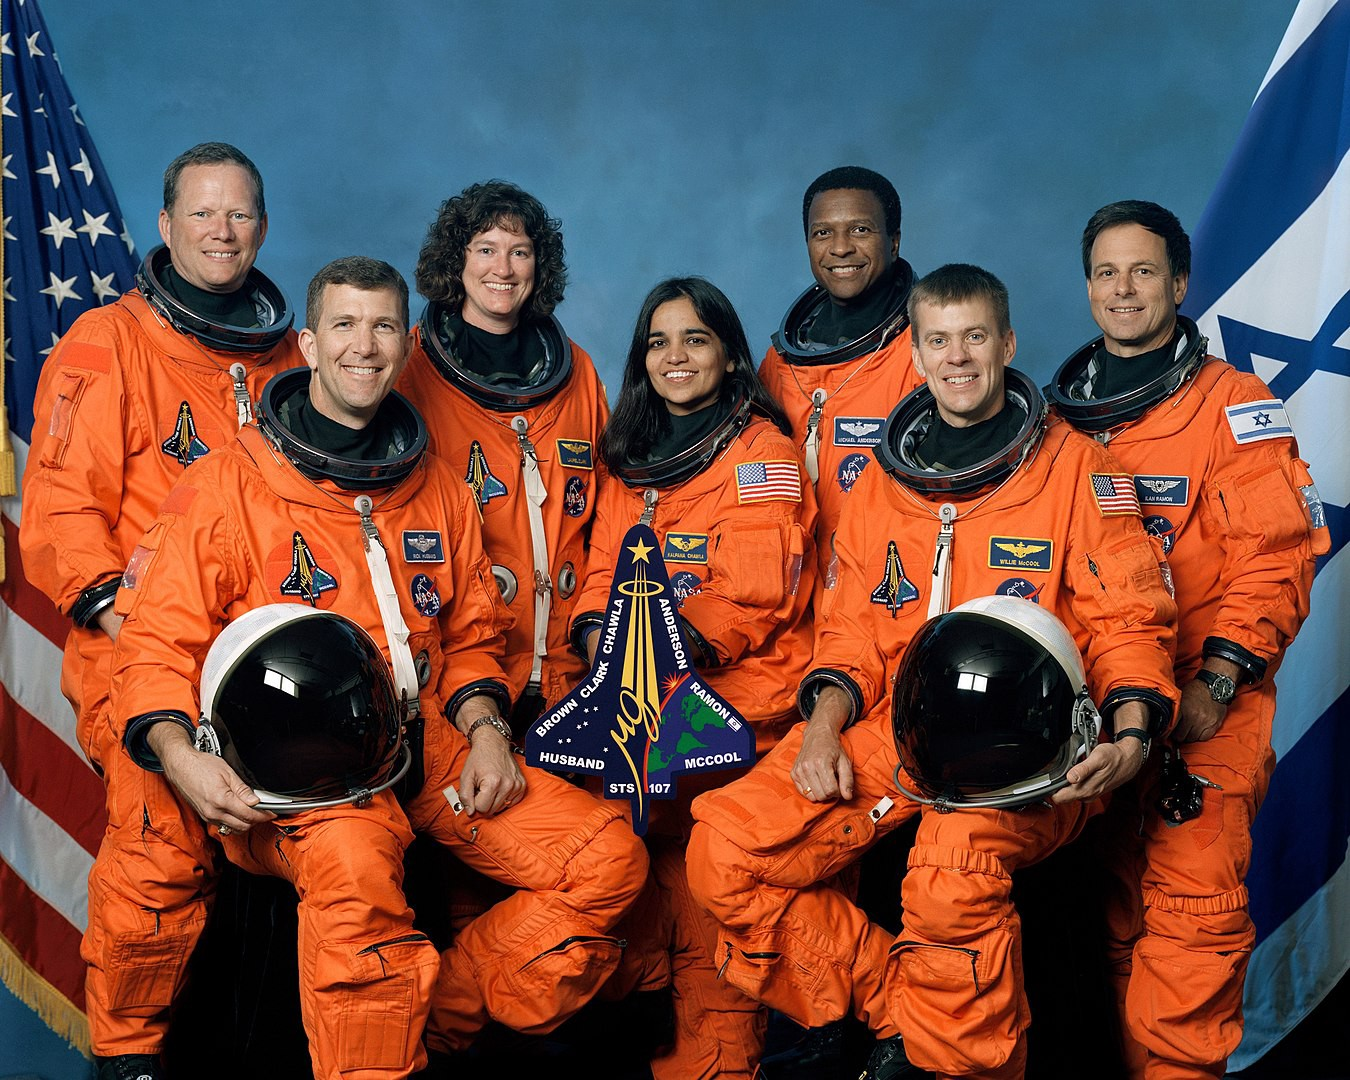 A crew of seven astronauts pose in spacesuits.